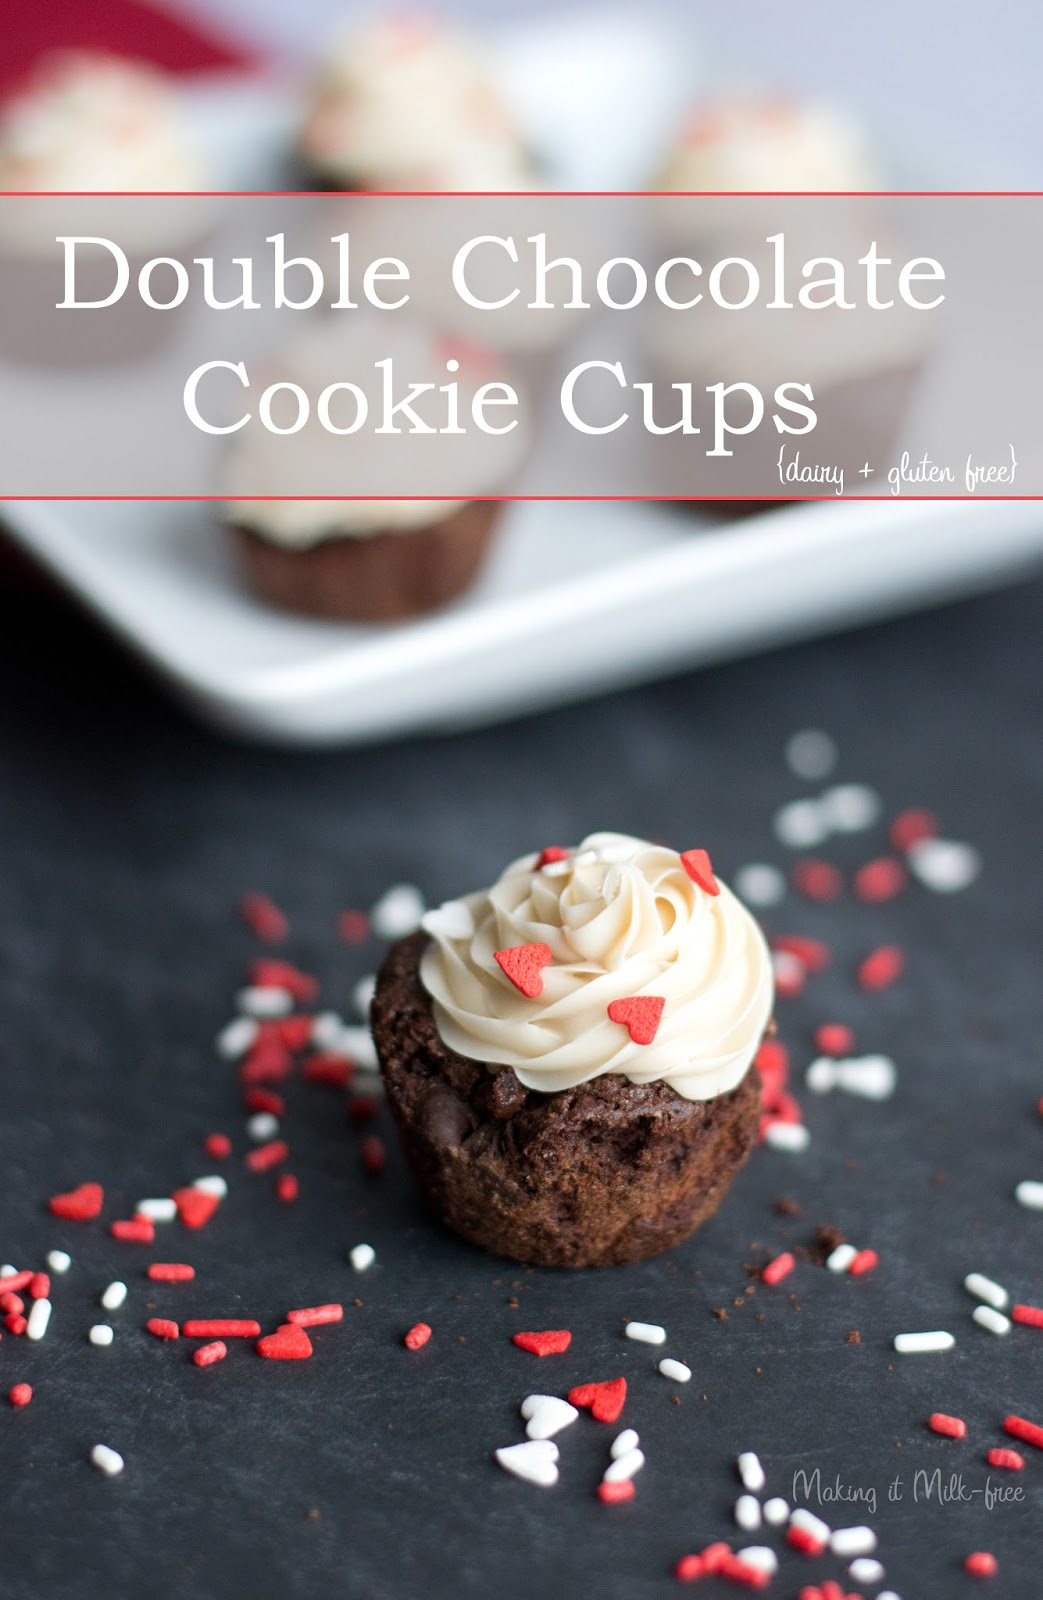 Double Chocolate Cookie Cups {dairy + gluten free} from Making it Milk-free